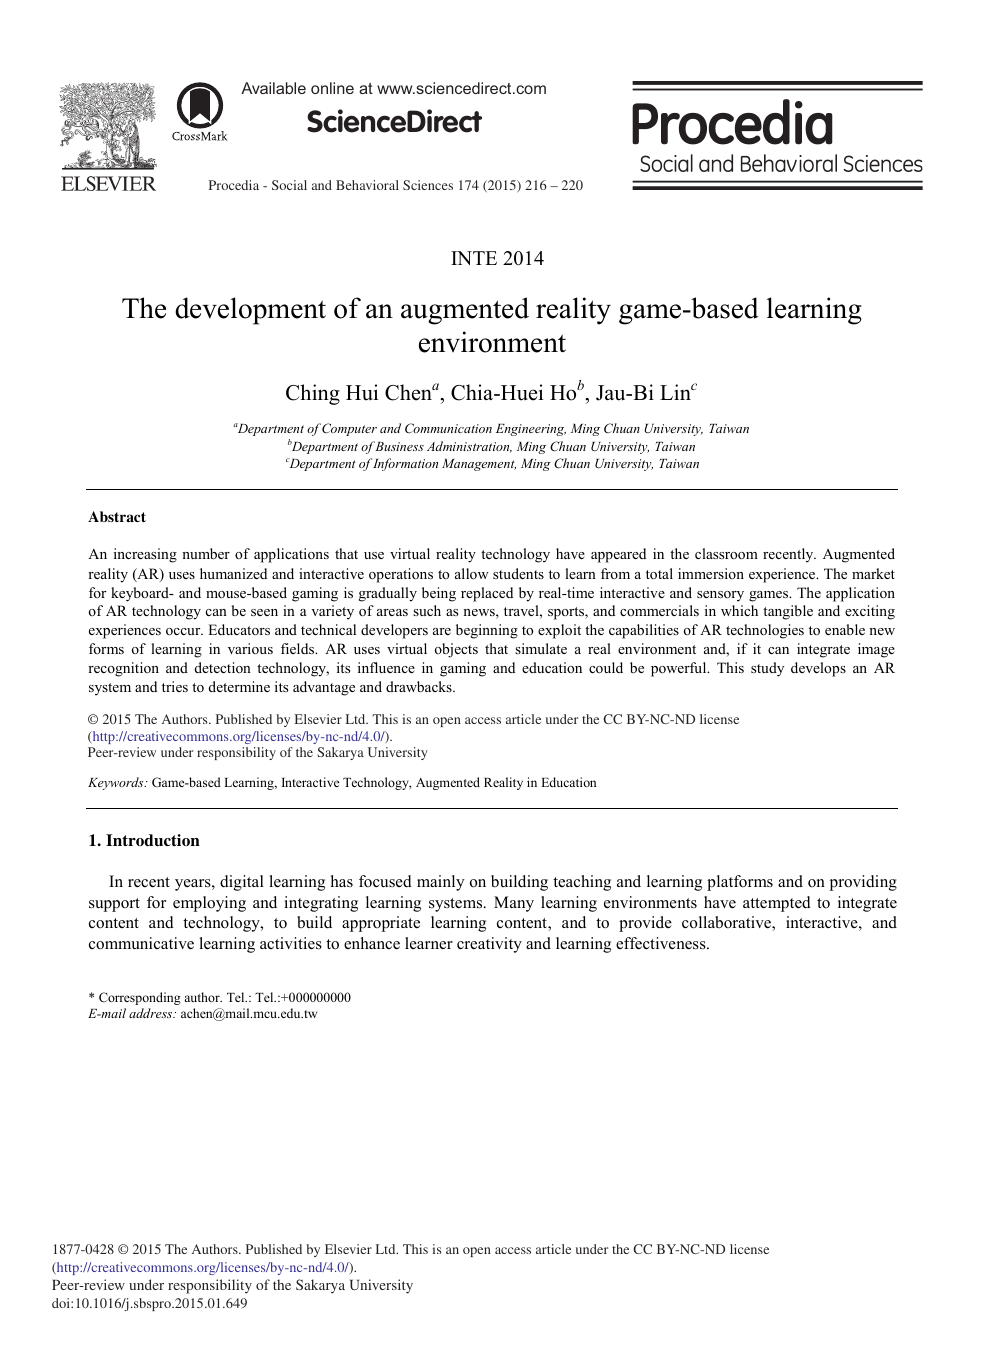 The Development of an Augmented Reality Game-based Learning